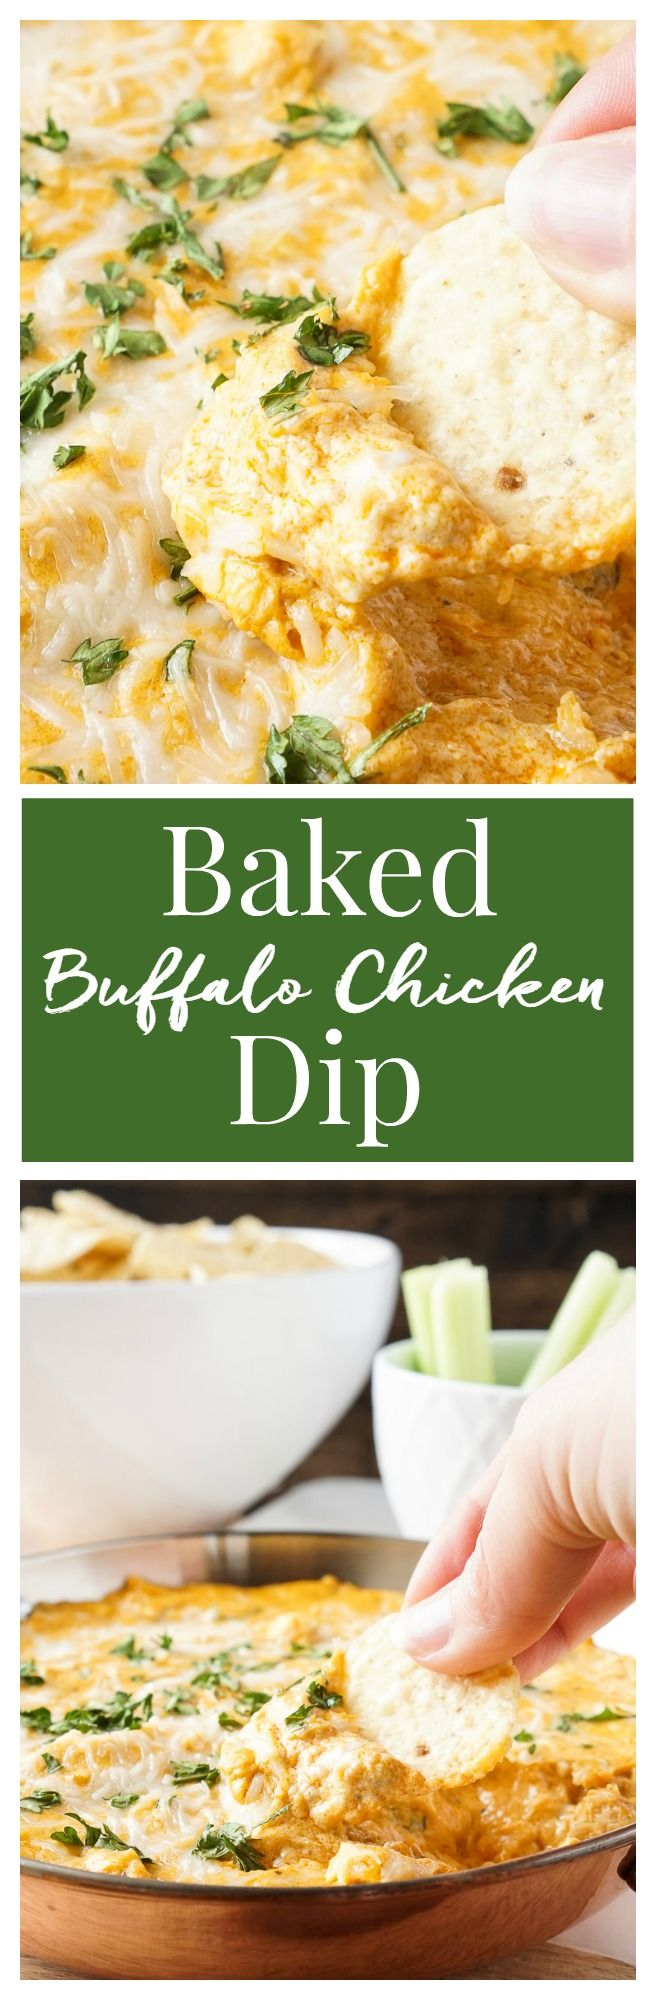 This Baked Buffalo Chicken Dip is made with real cream and blue cheeses, rotisserie chicken, hot sauce and spices for a sensational appetizer that's sure to please! Plus, it's ready in less than 30 minutes!